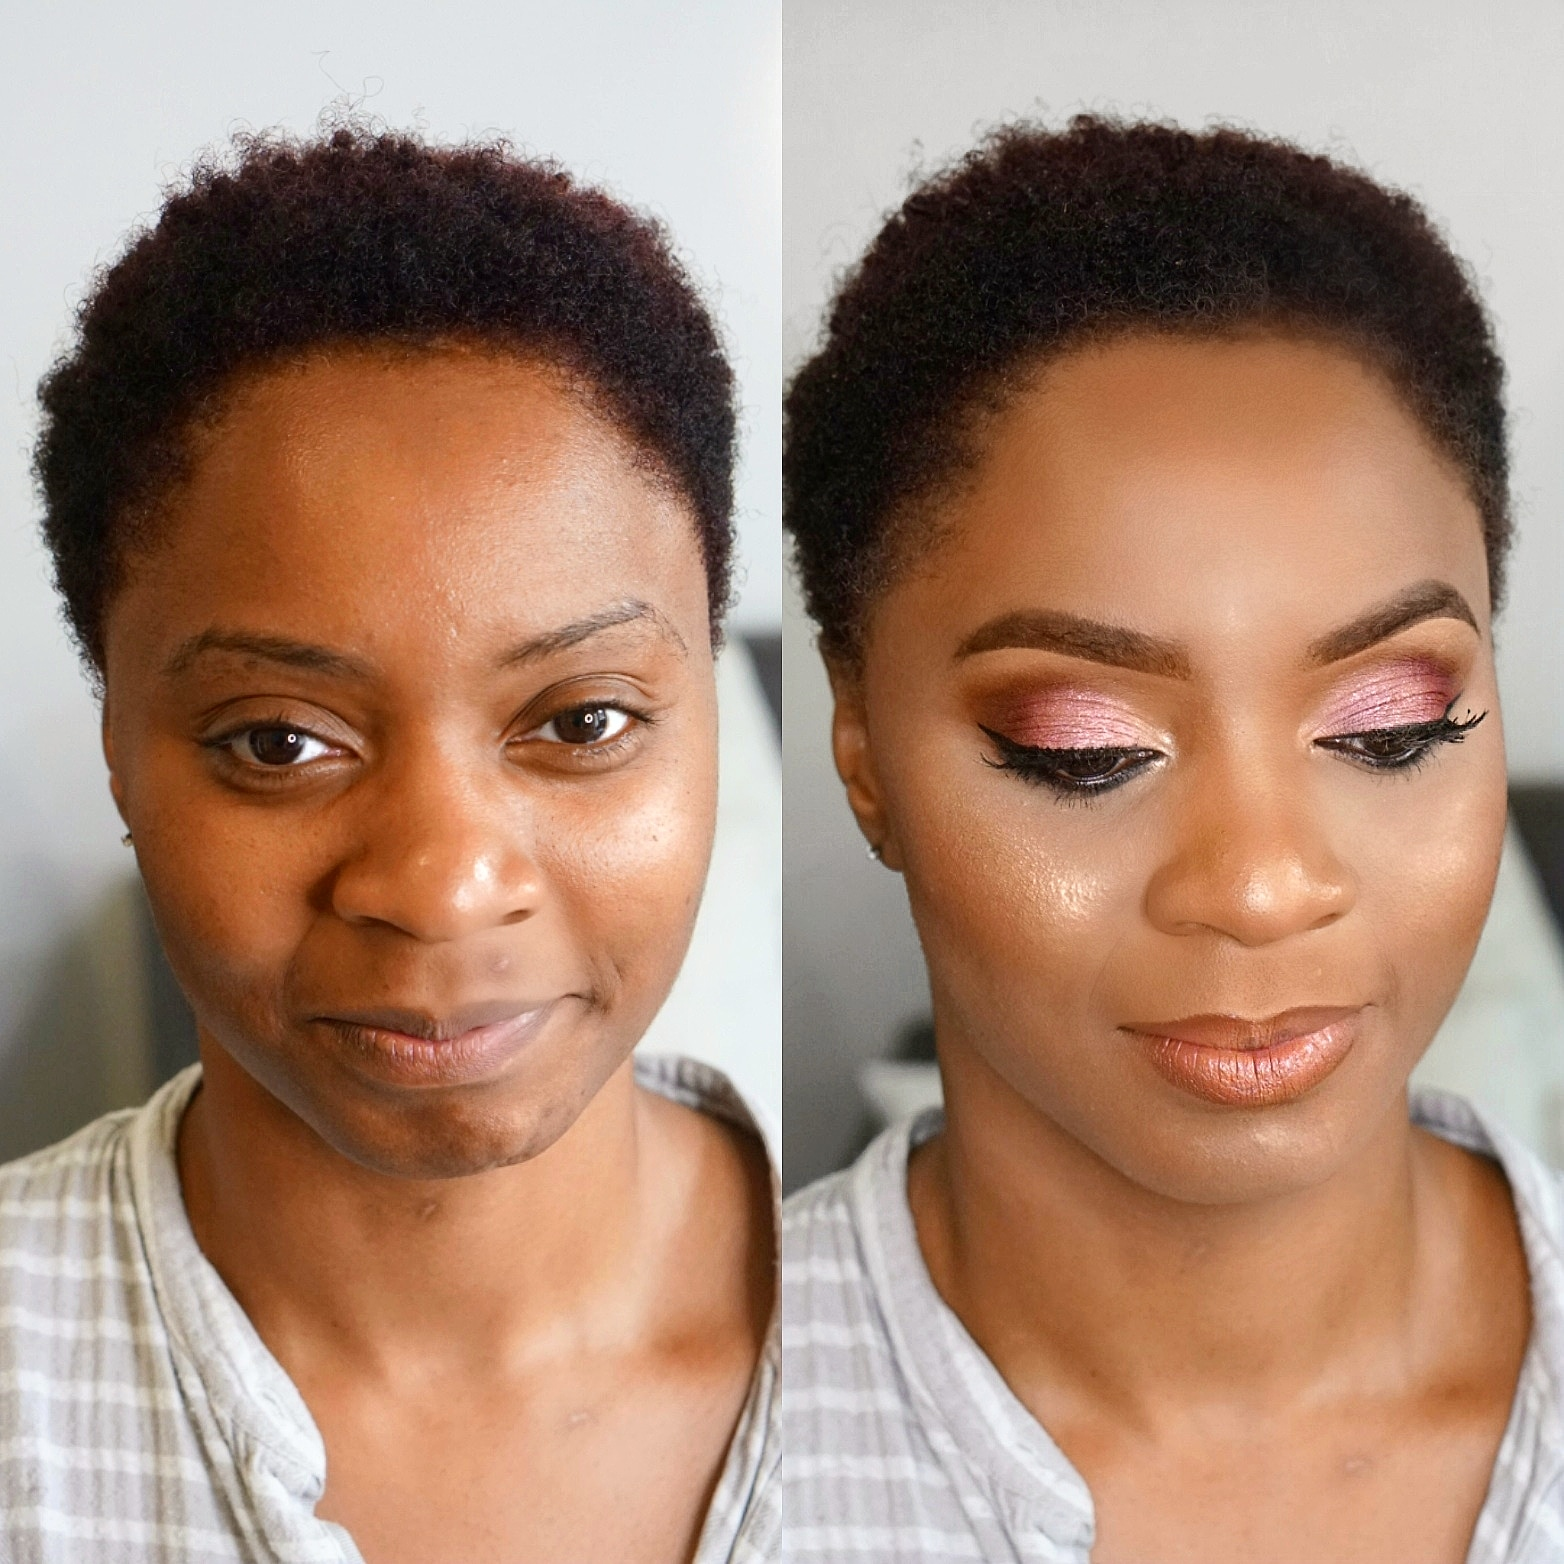 Makeup Artist London | Black Wedding Makeup | Hertfordshire